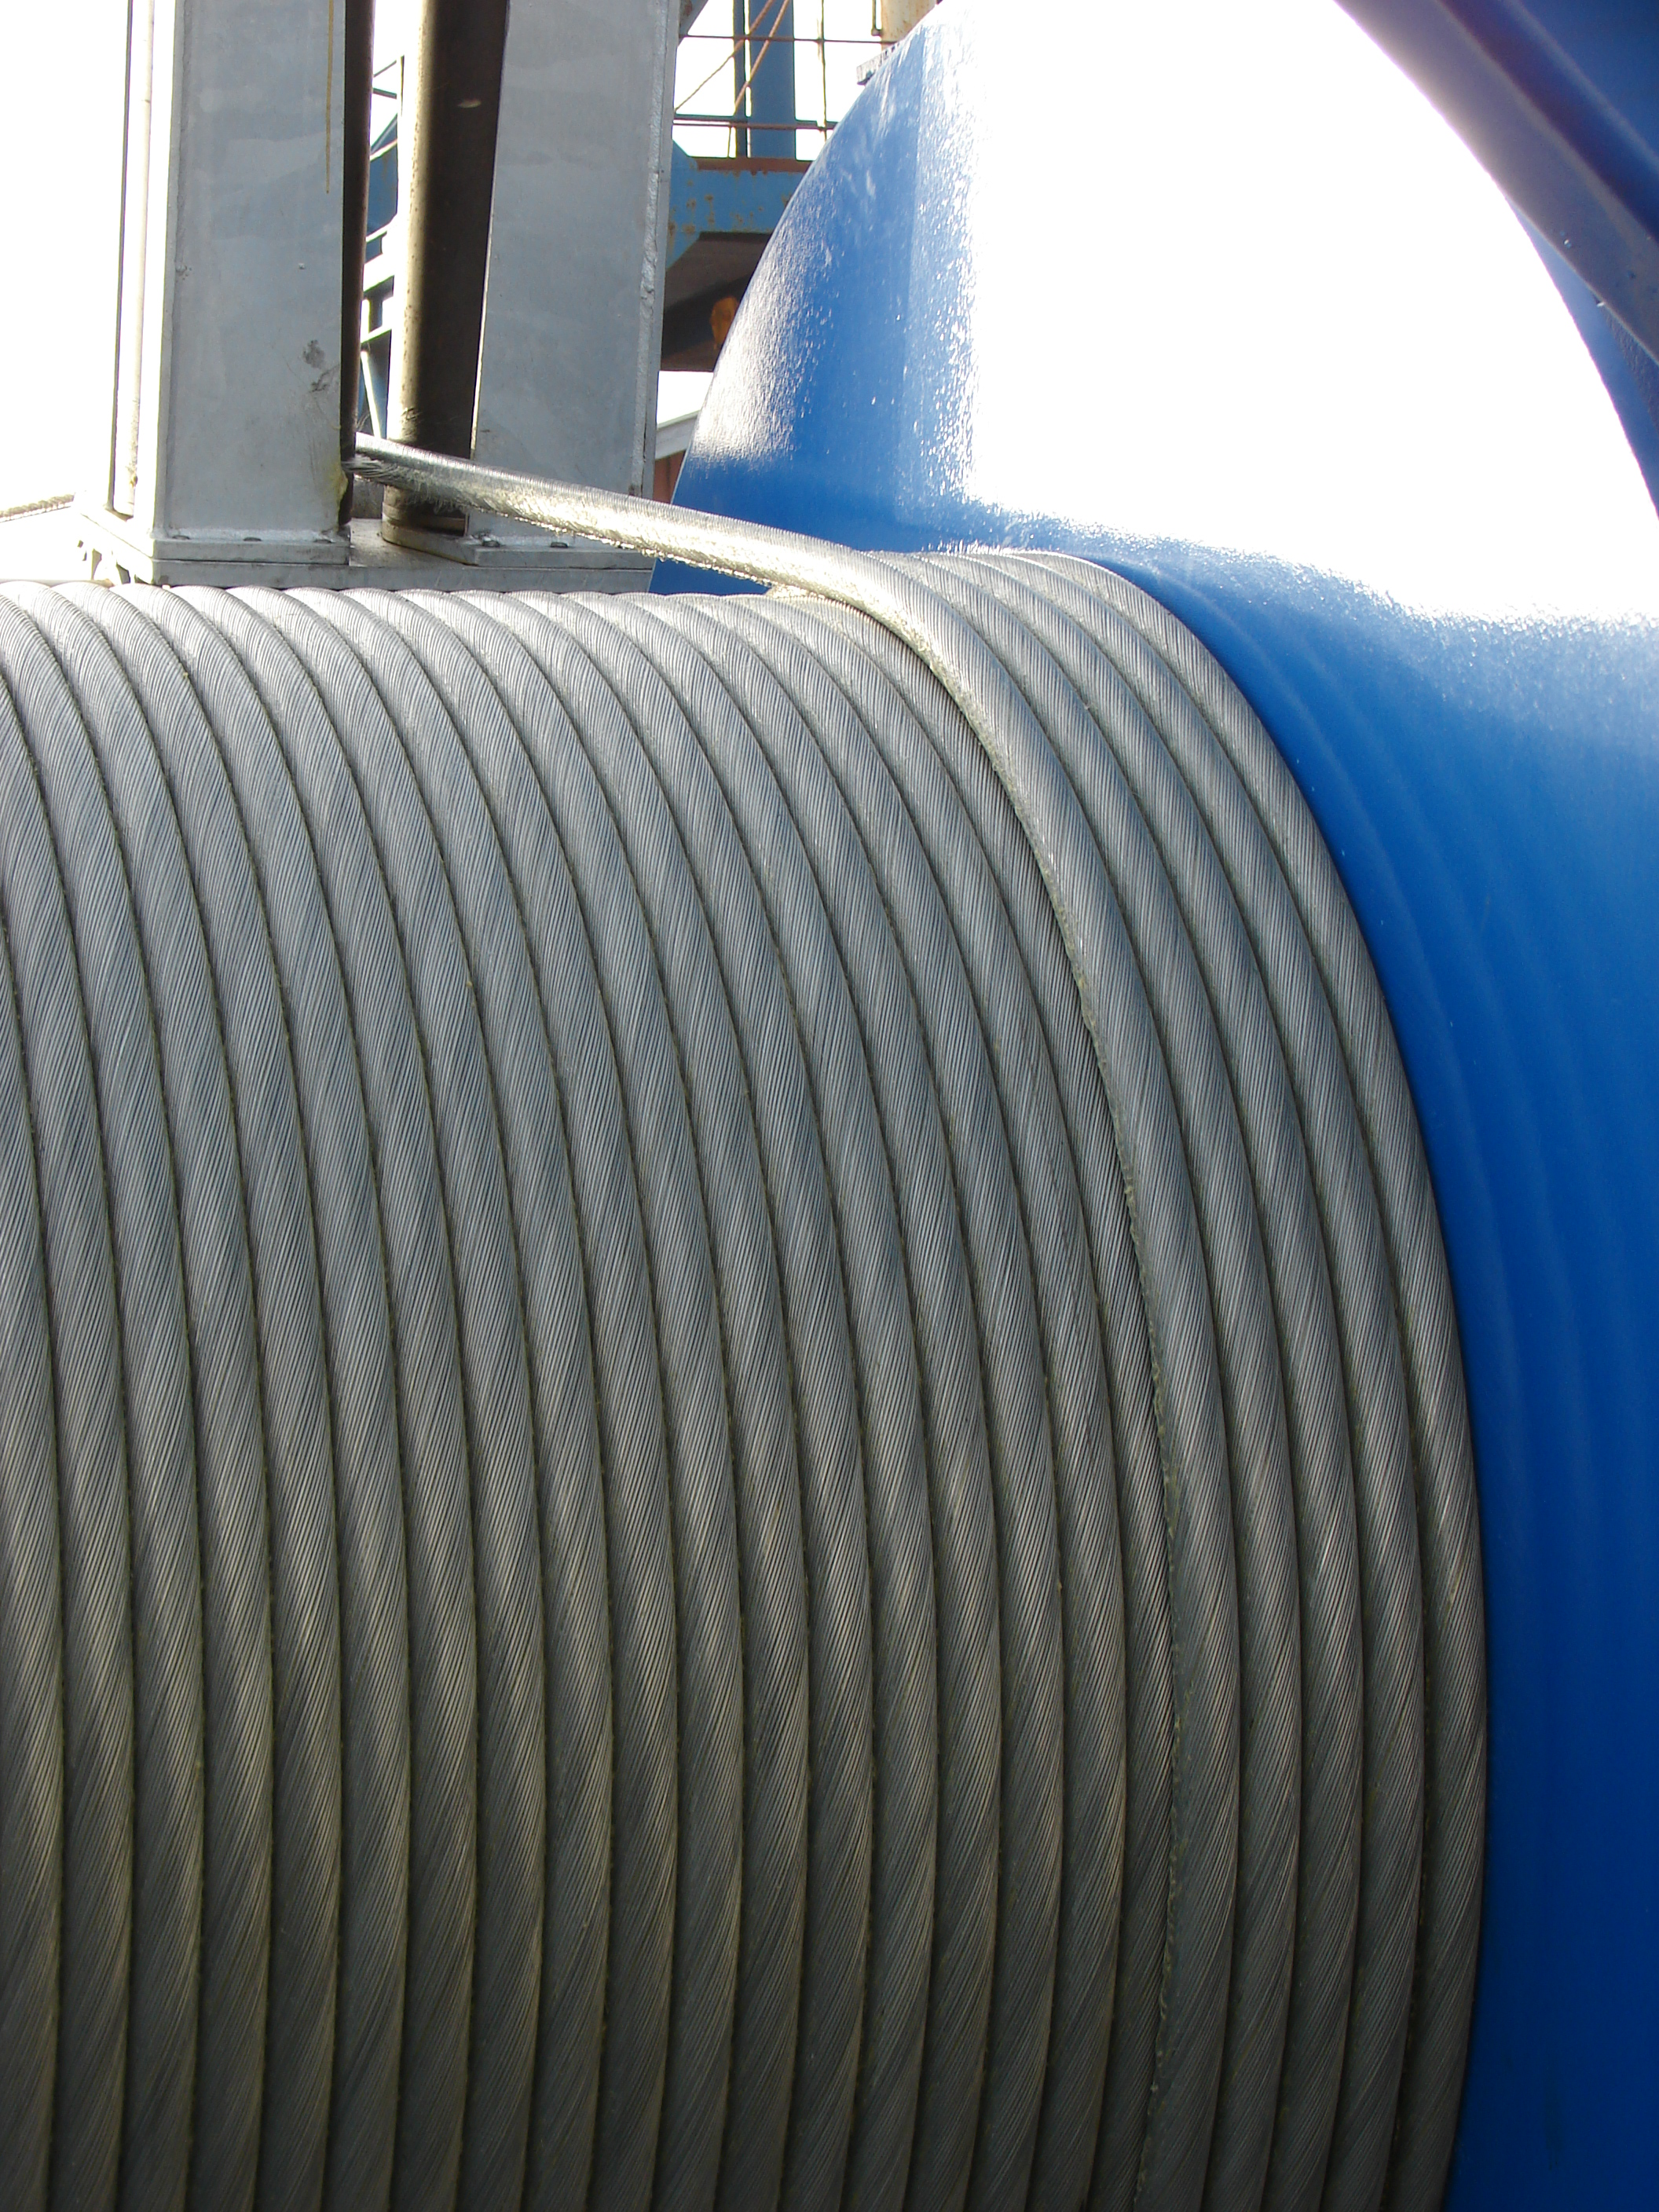 Spooling device image